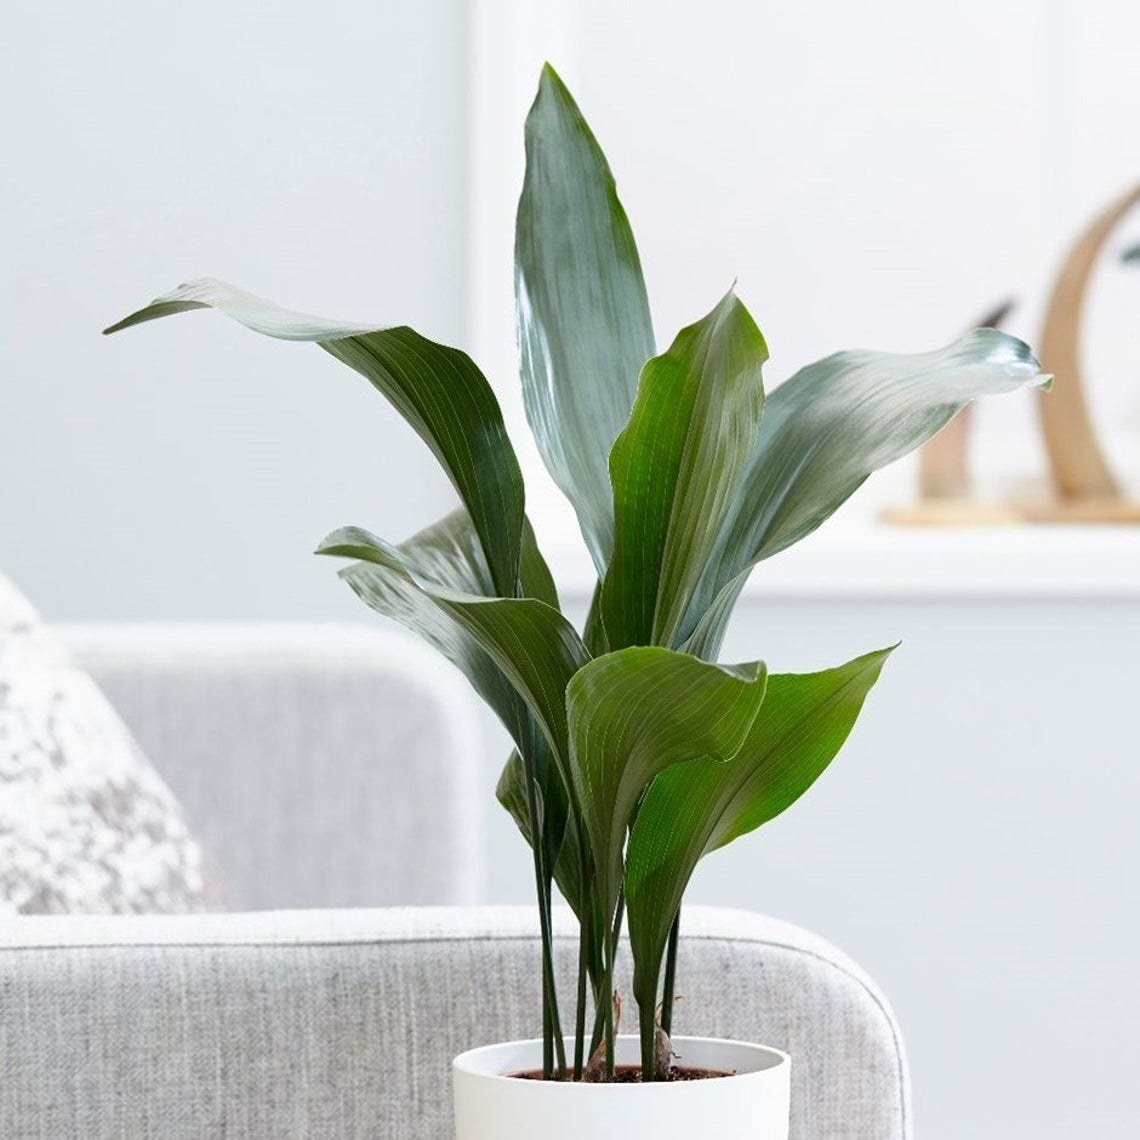 Large, full leafy plant inside a pot on the floor